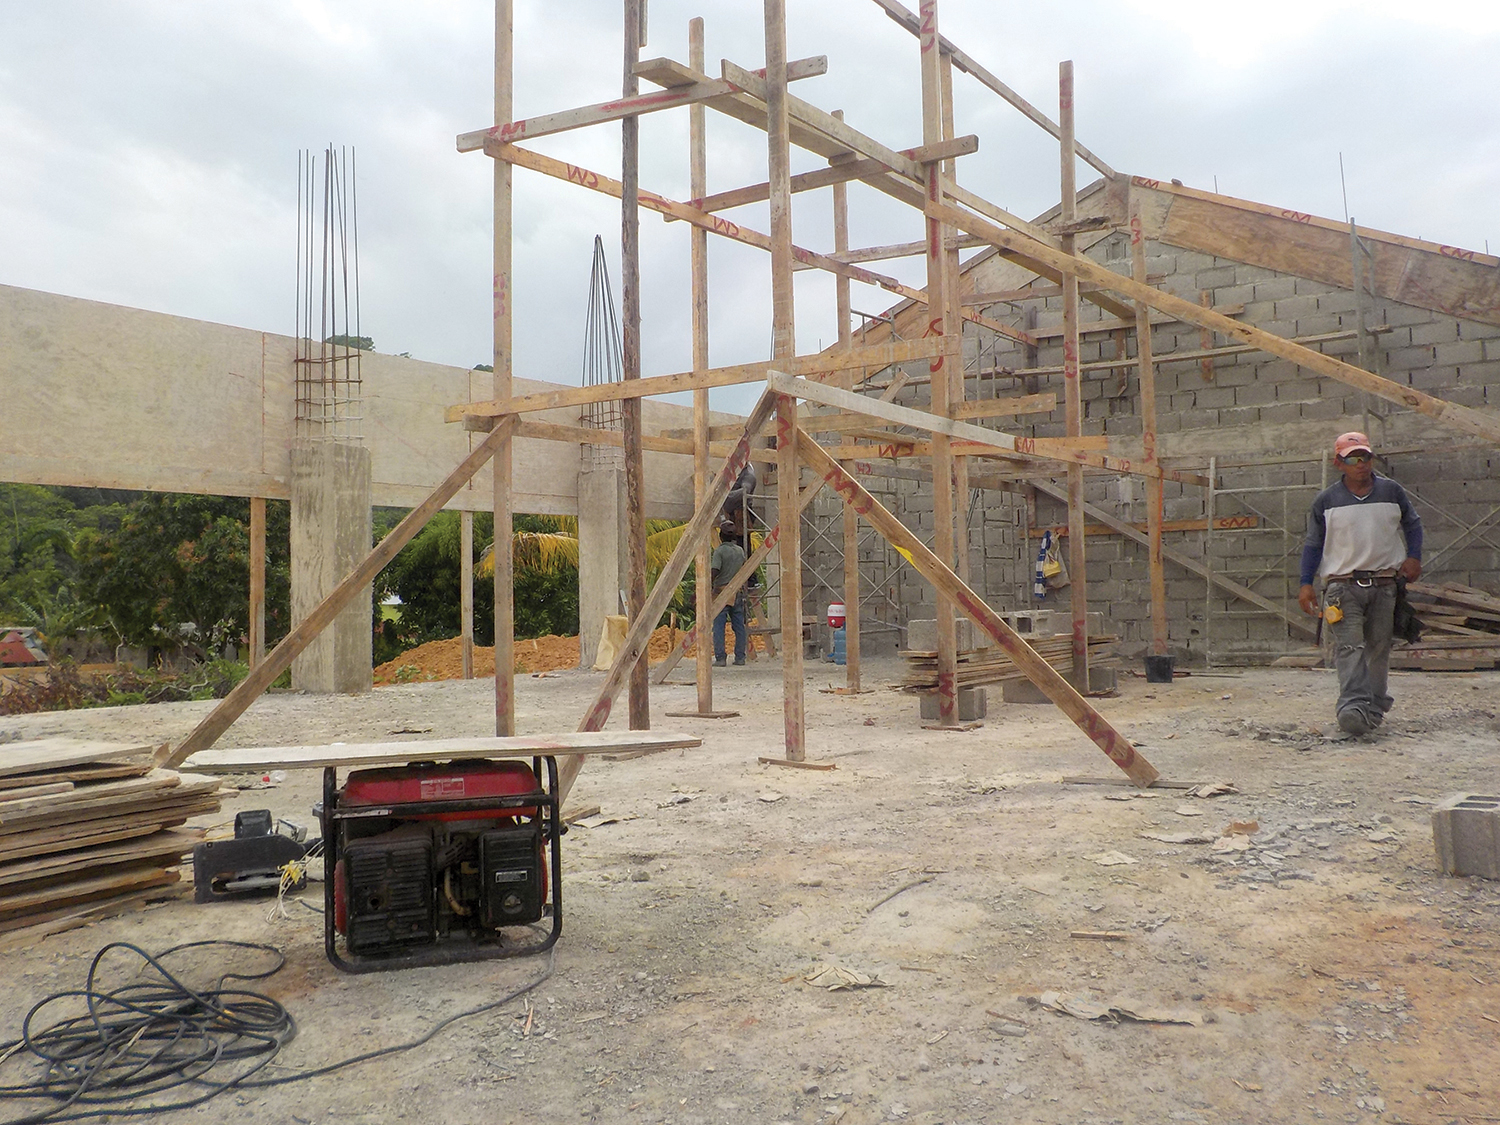 The entire construction of this new church is accomplished through local employment providing jobs to Dominicans. Due to our long-term vision to raise a generation of Christian leaders, this church will be a place for children and families to grow spiritually.